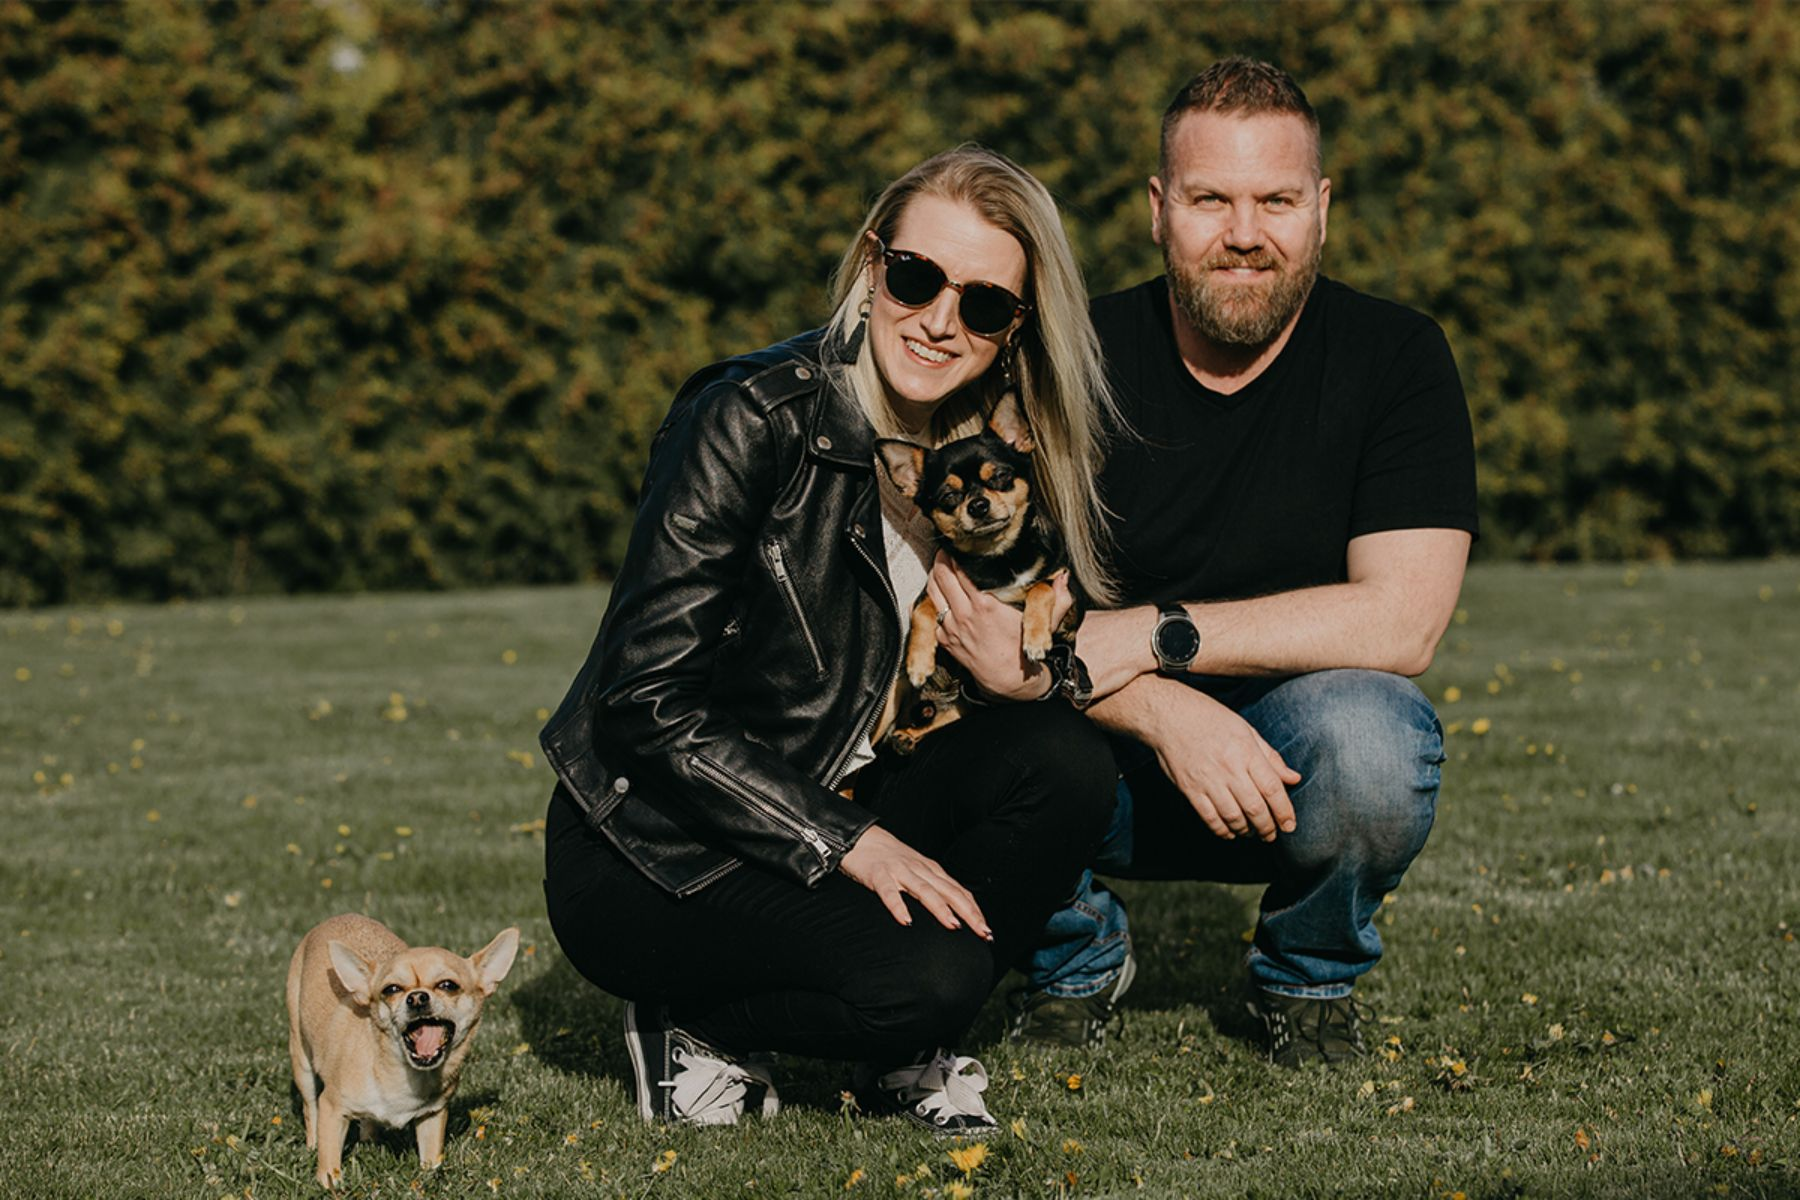 A South African and a Canadian relocating themselves, their daughter and two dogs from Malta to Estonia. - image